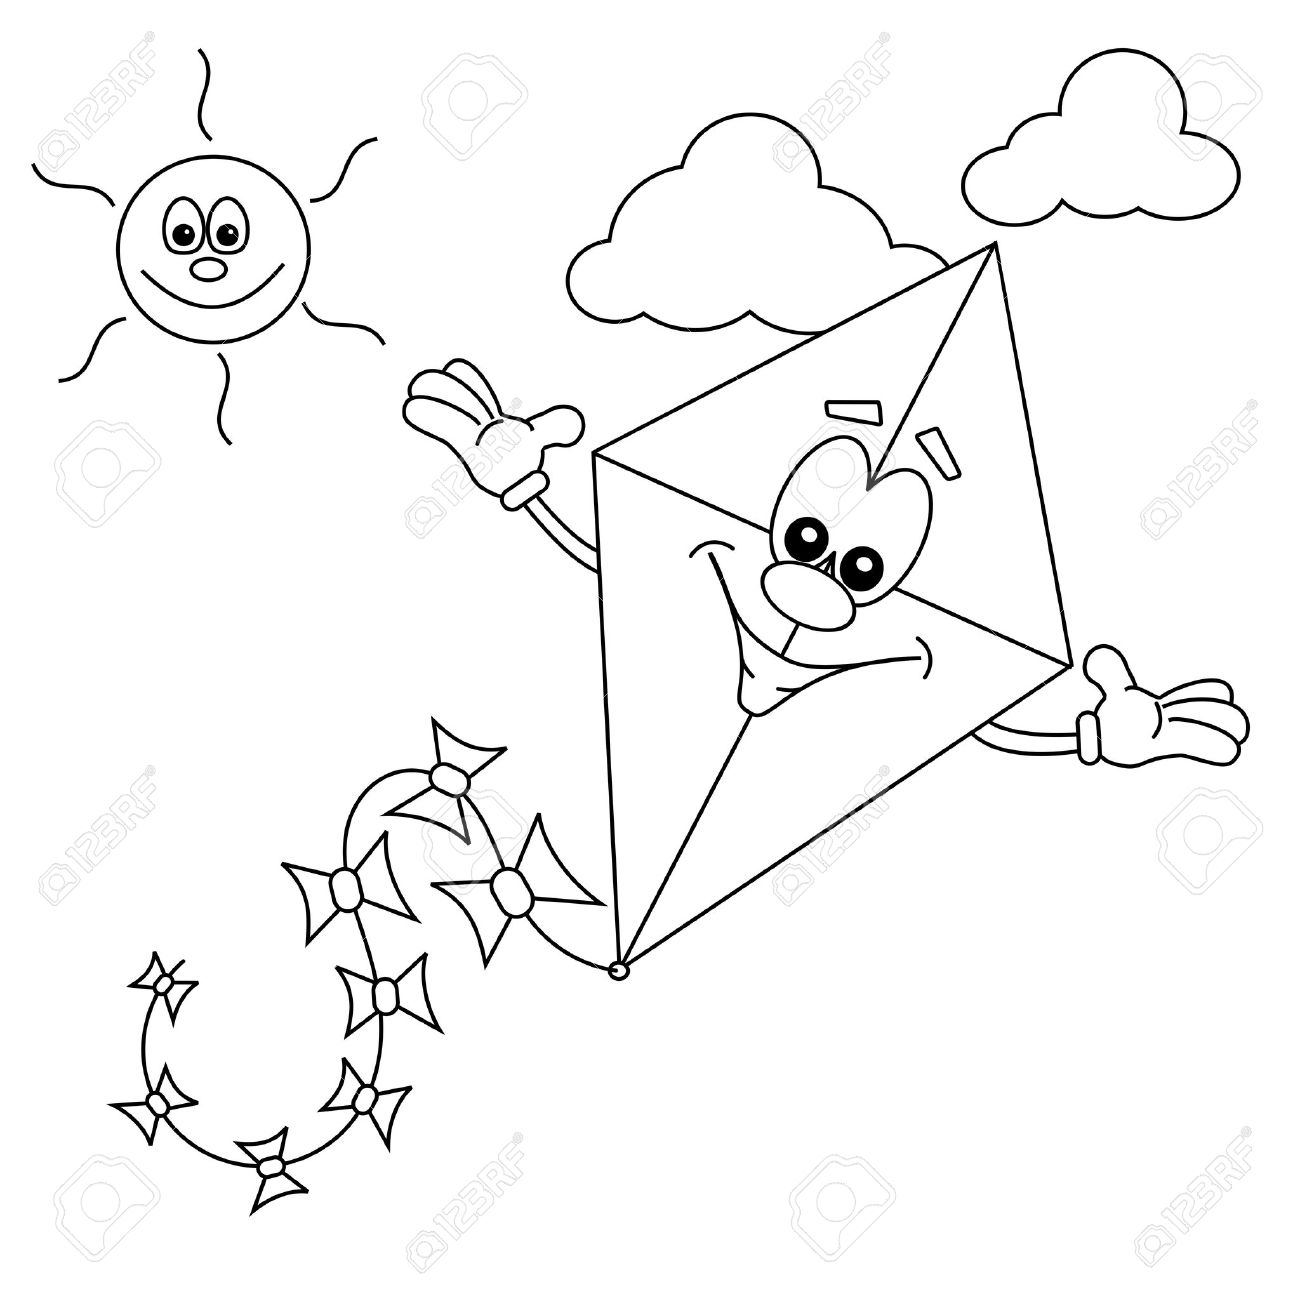 1300x1300 Cartoon Kite Outline For Colouring In Book Royalty Free Cliparts